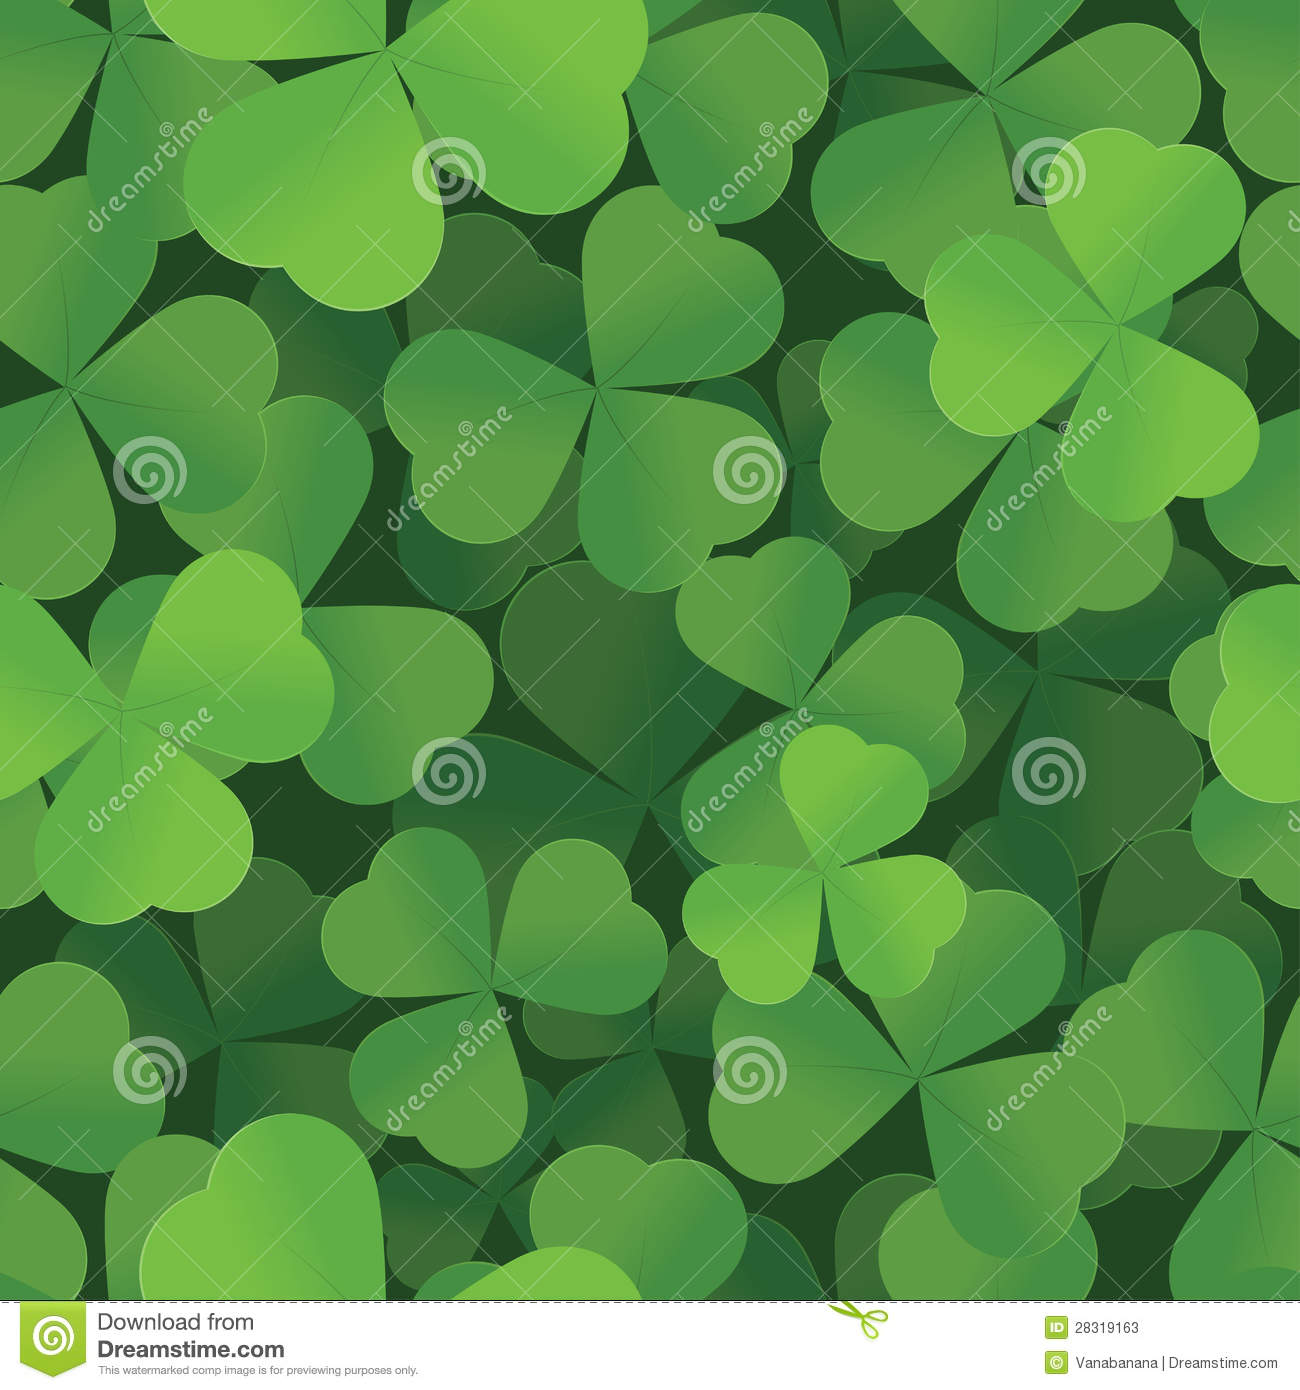 Garden Dreams St. Patricks Day Shamrock Seamless Background Stock Vector